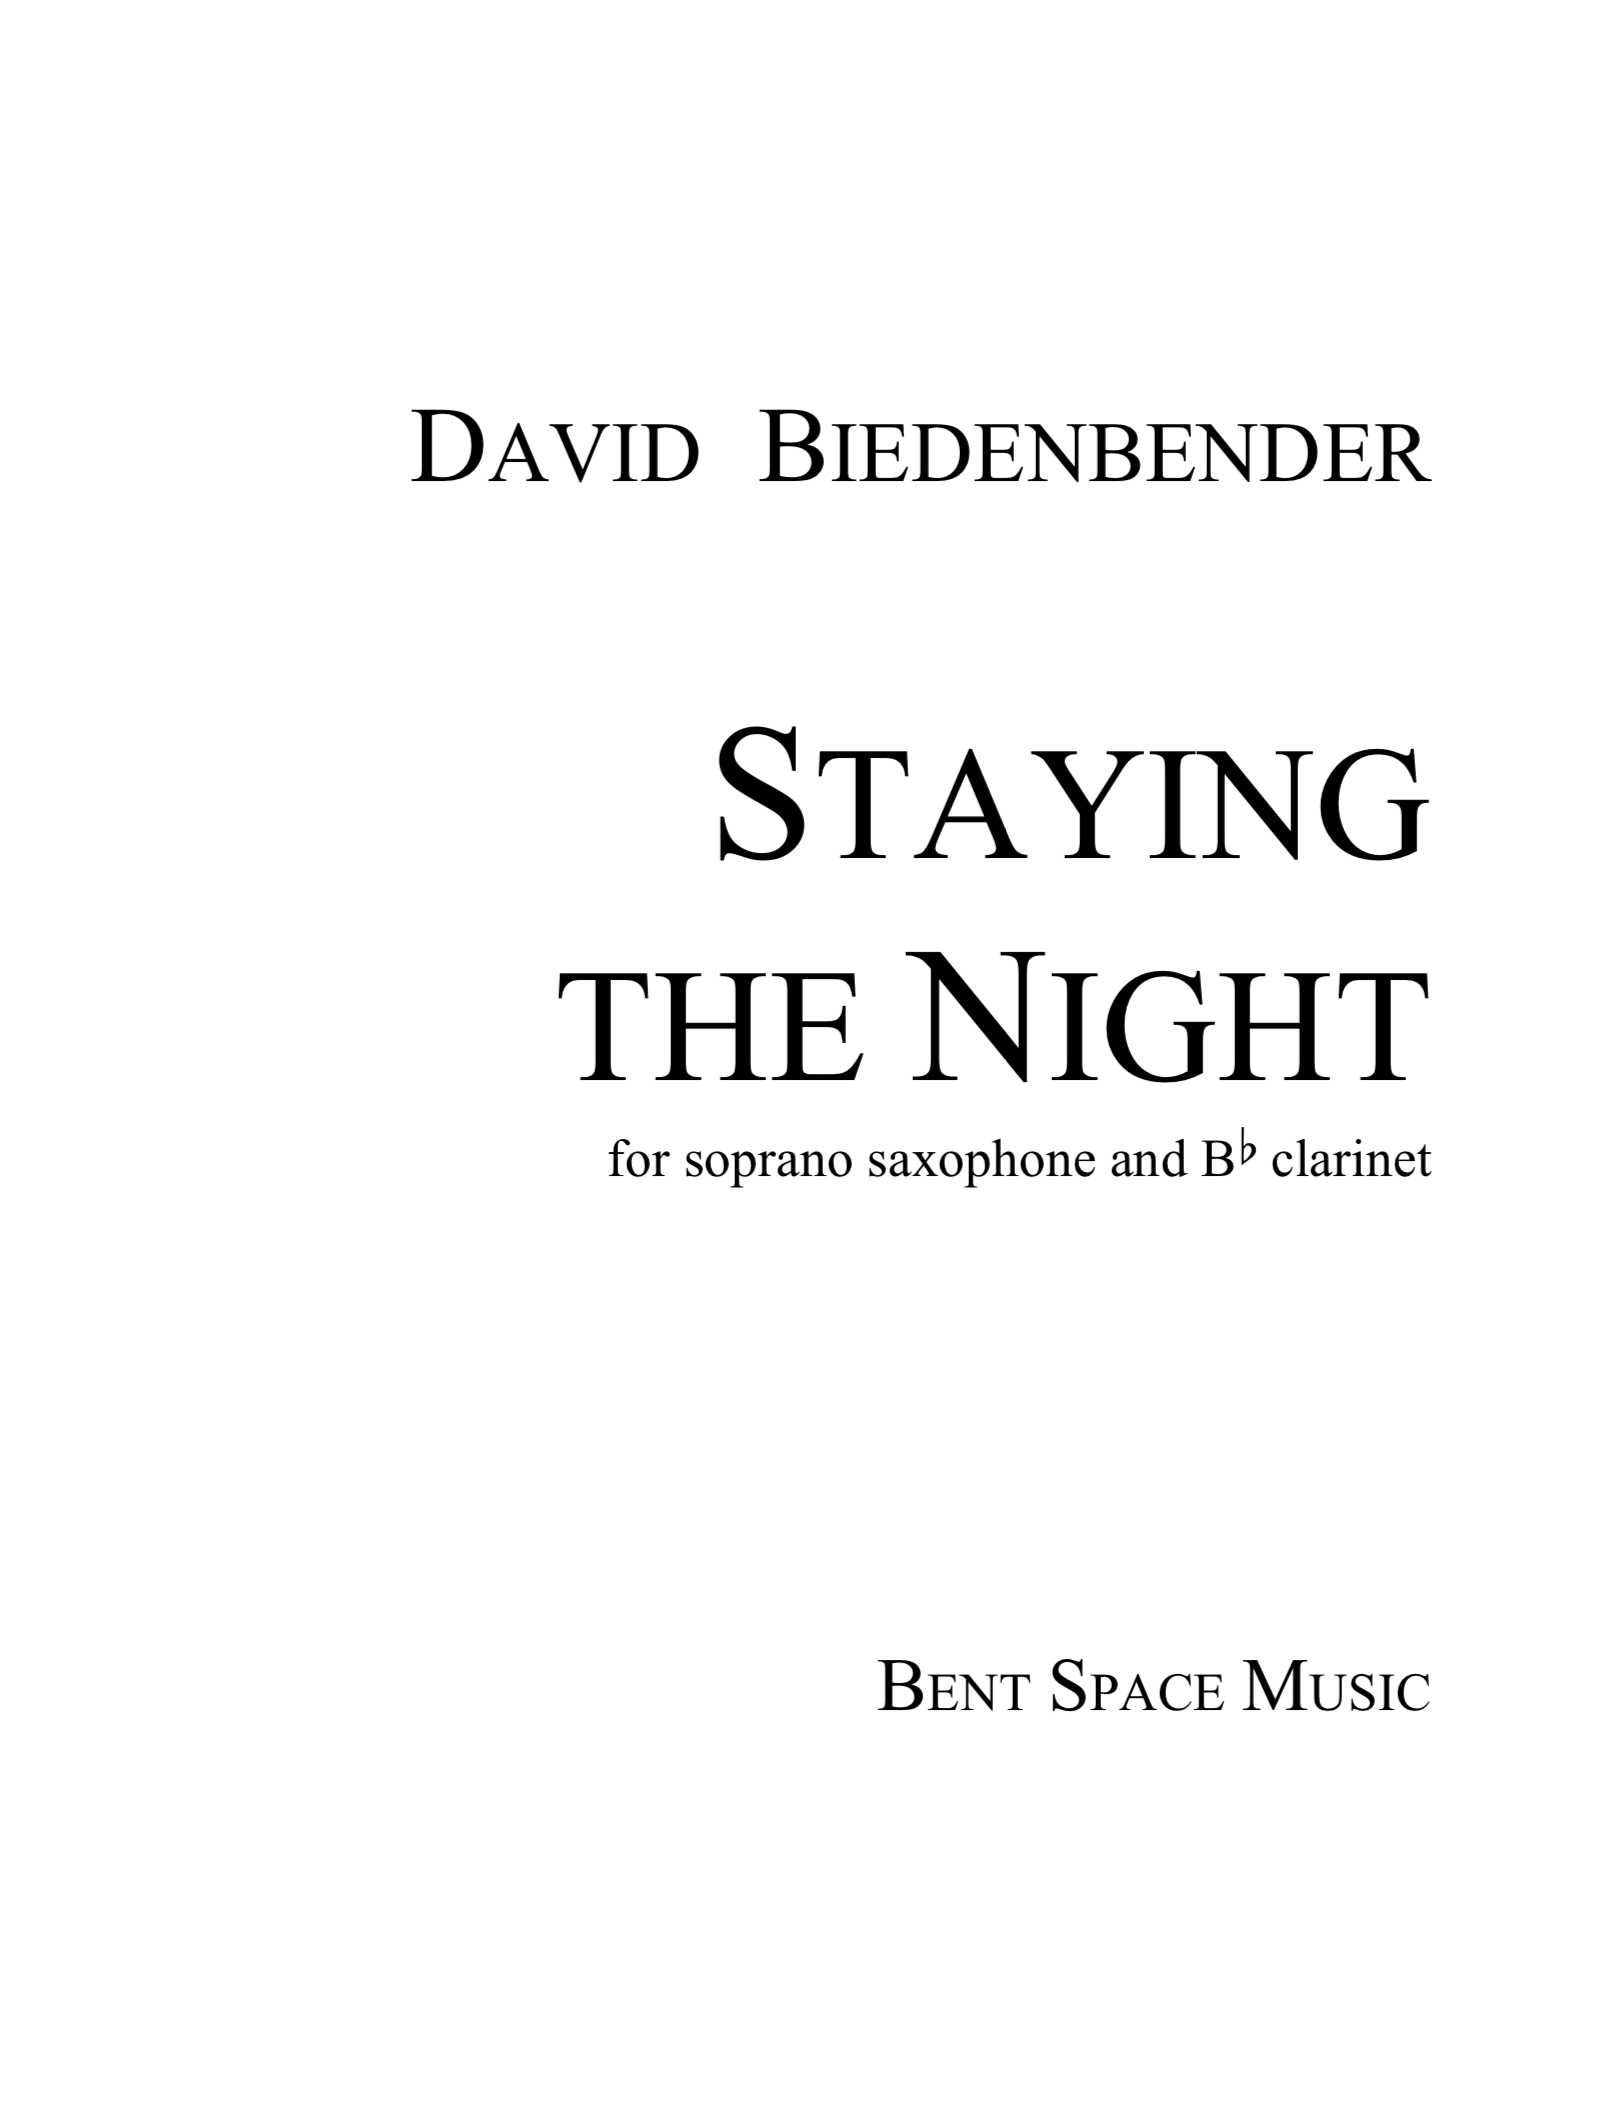 Staying The Night (Clarinet/Soprano Sax Version) by David Biedenbender